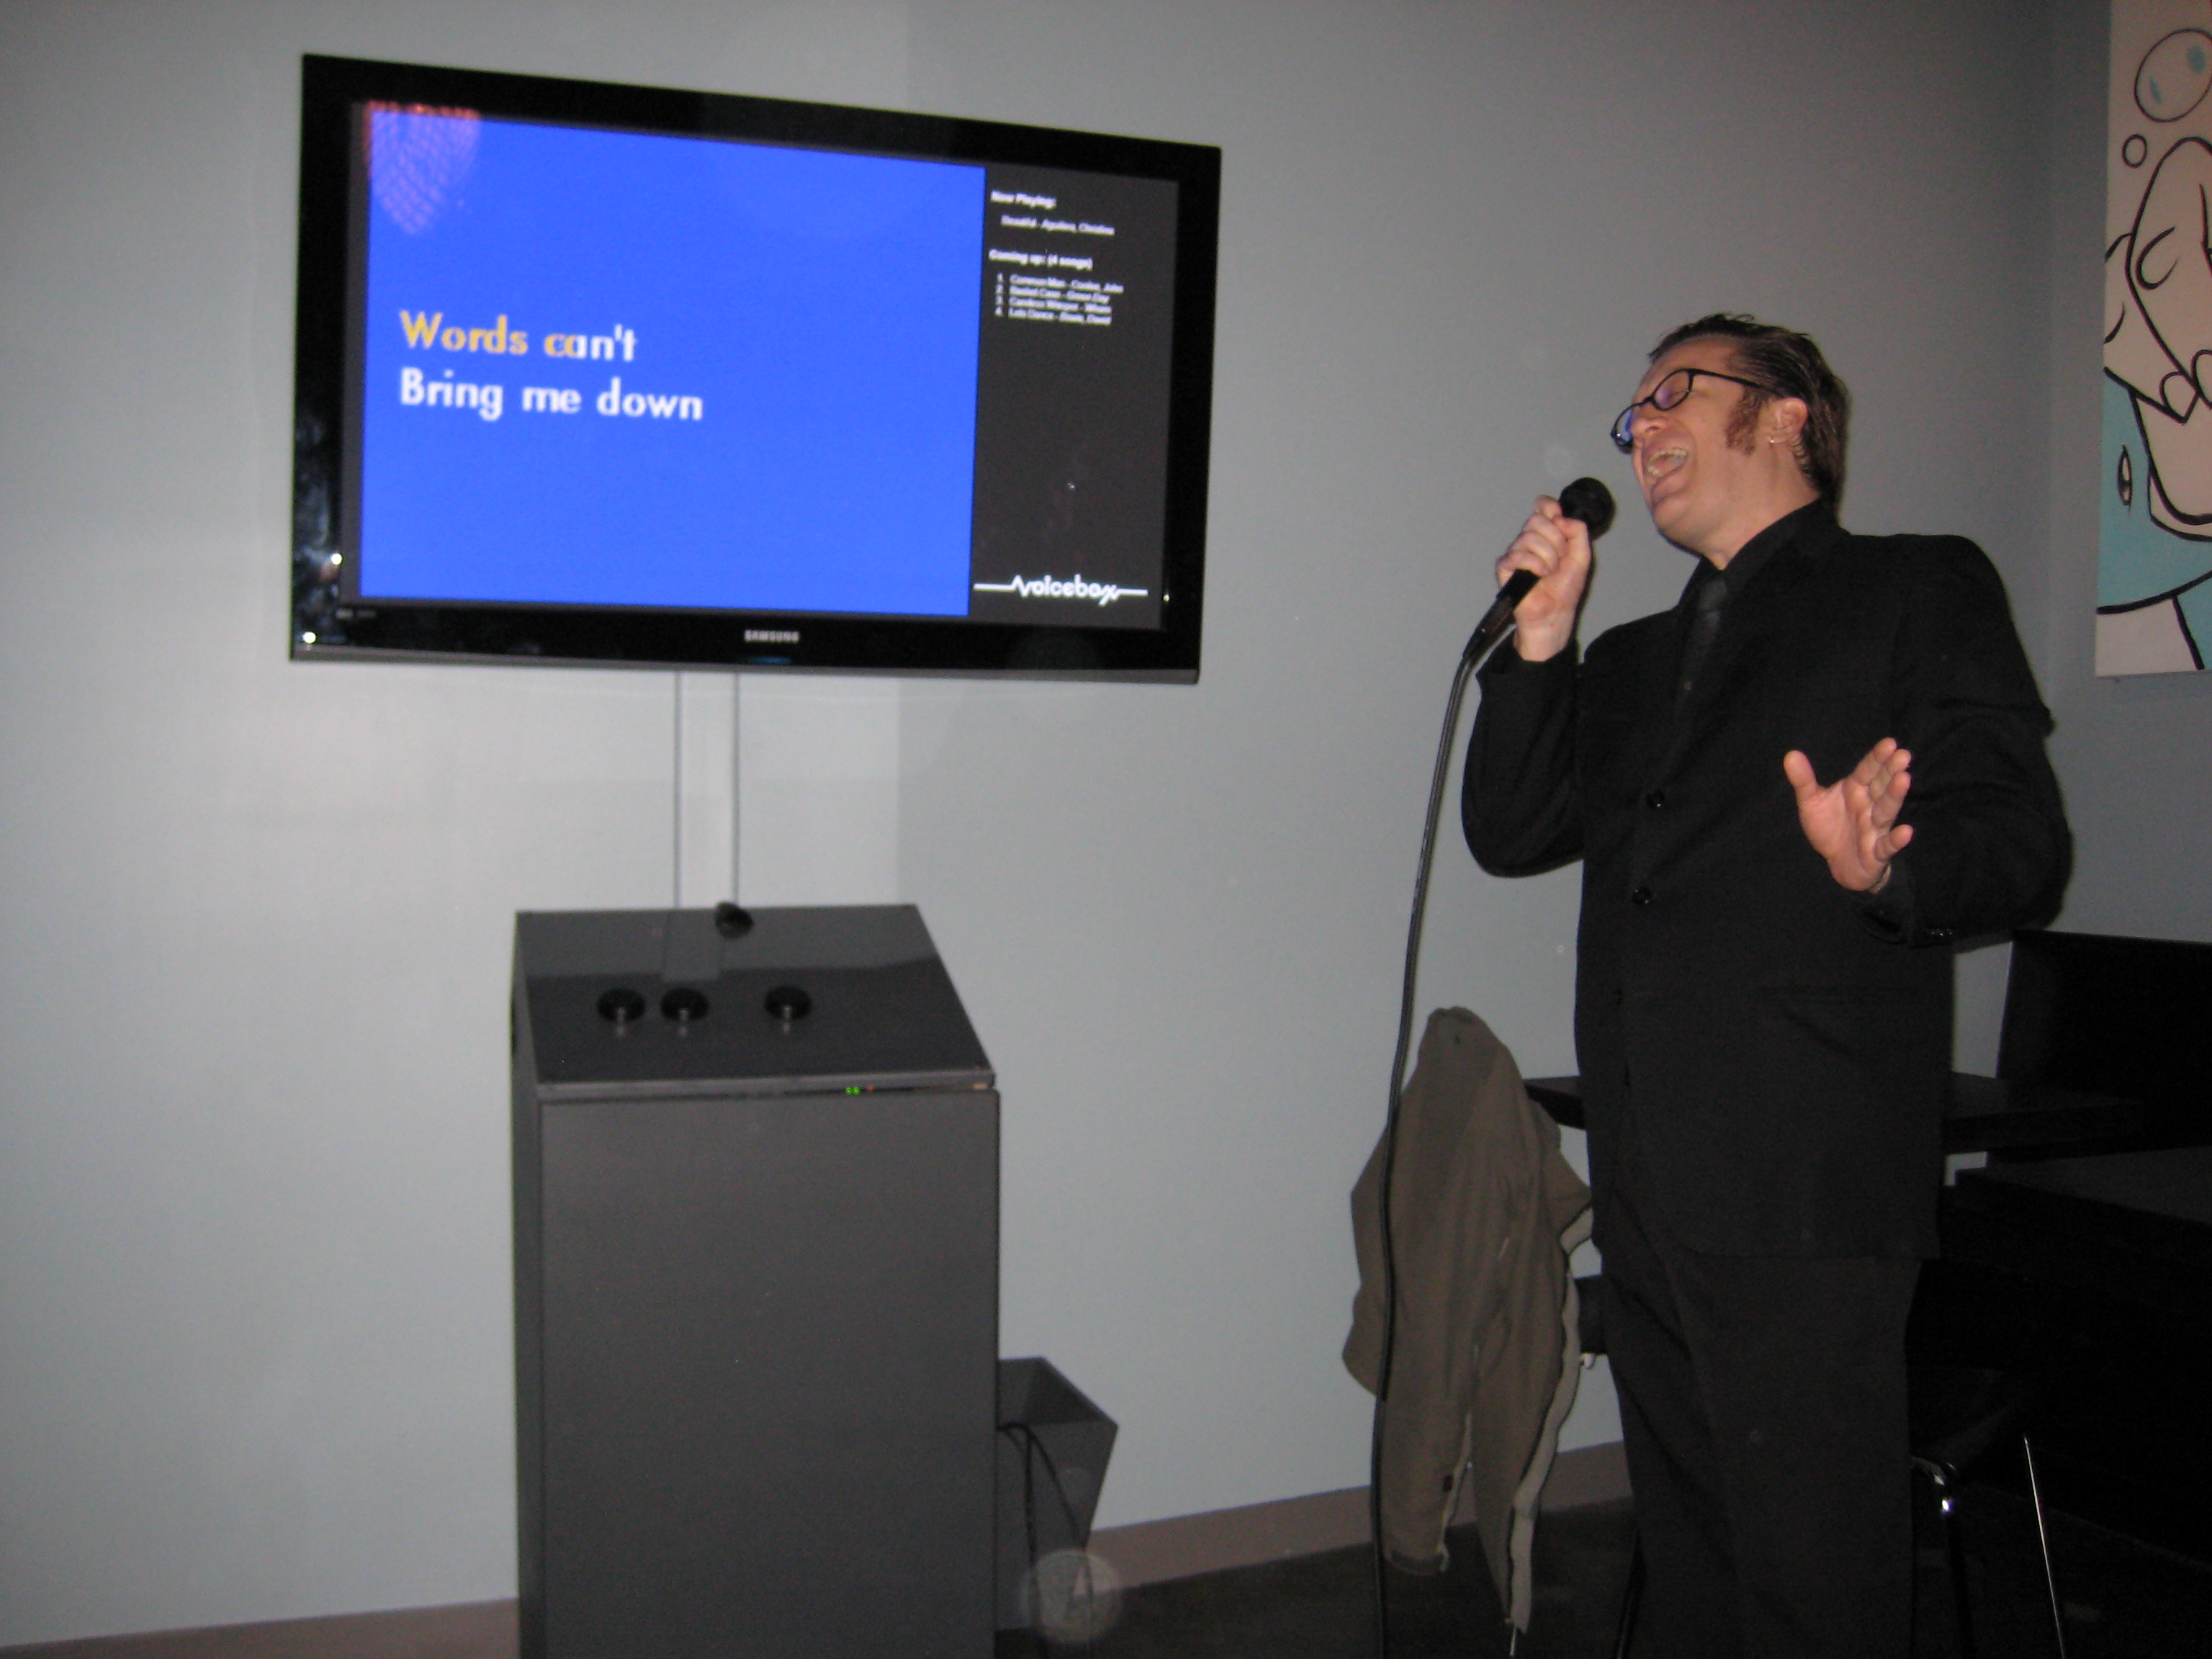 Jamie S. Rich Serenades at Voicebox Karaoke